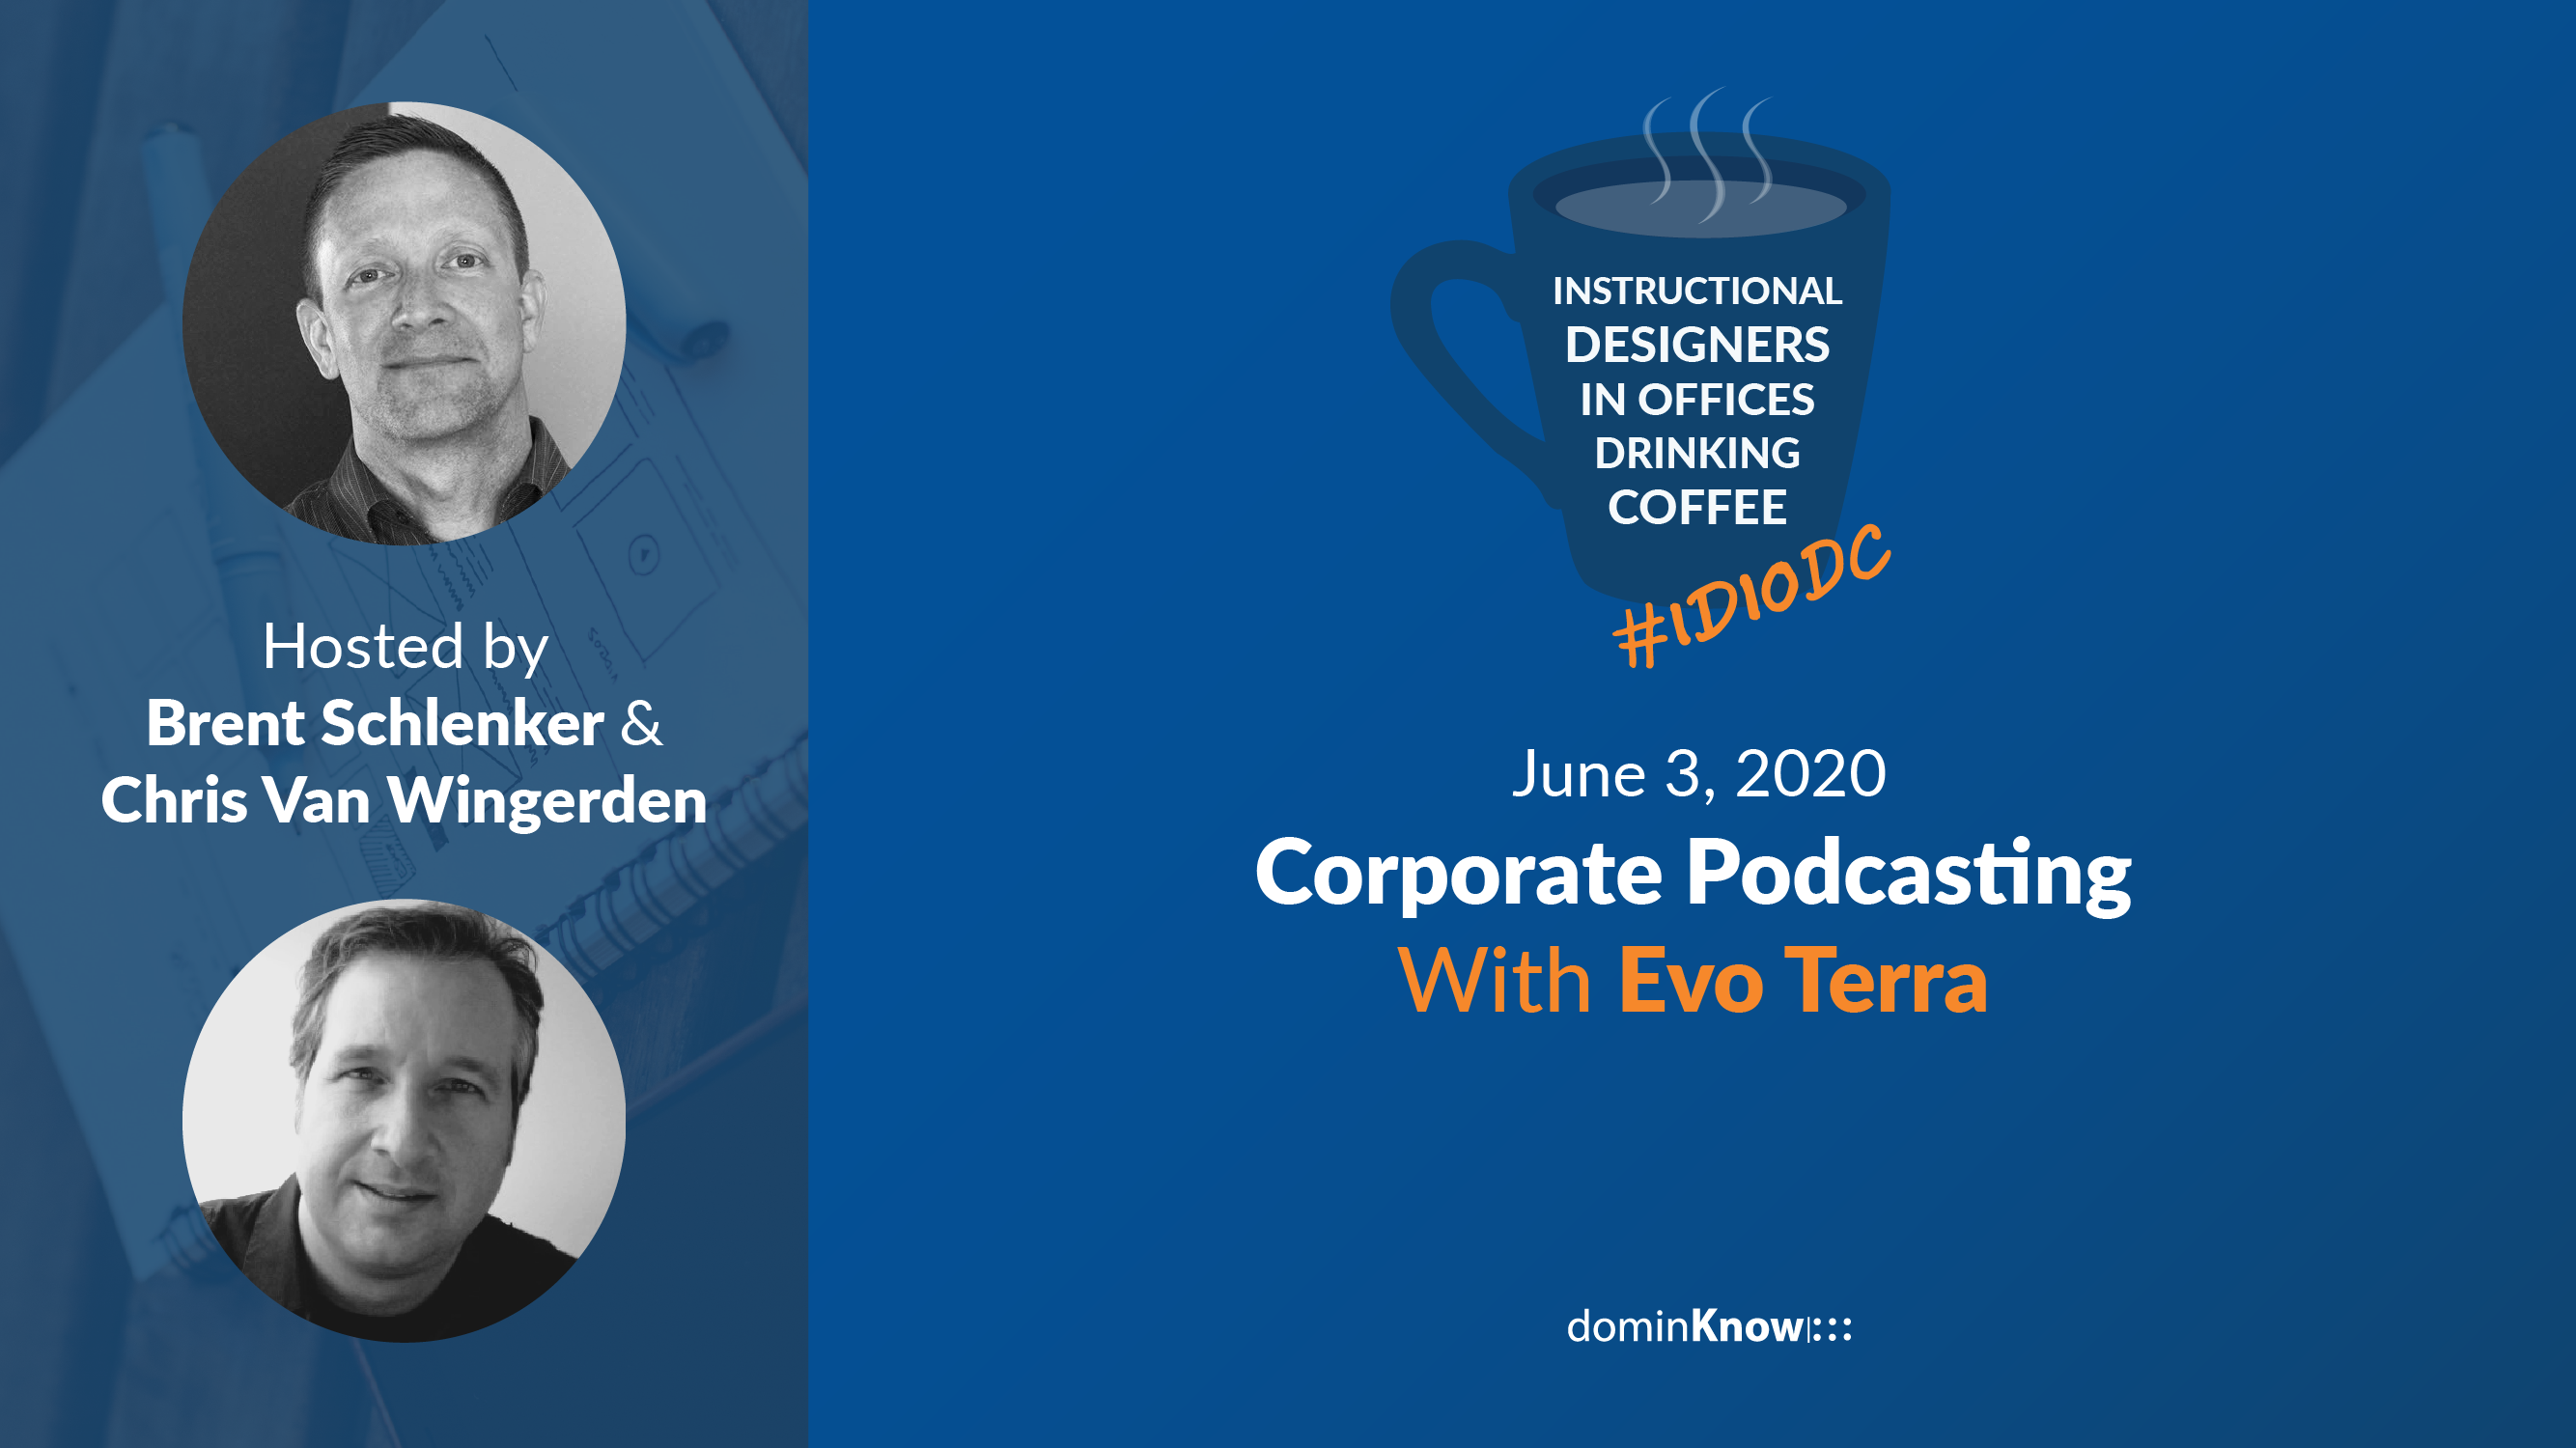 Master of podcasting Evo Terra joins us on the show to talk about corporate podcasting, and how you can introduce it into your L&D.